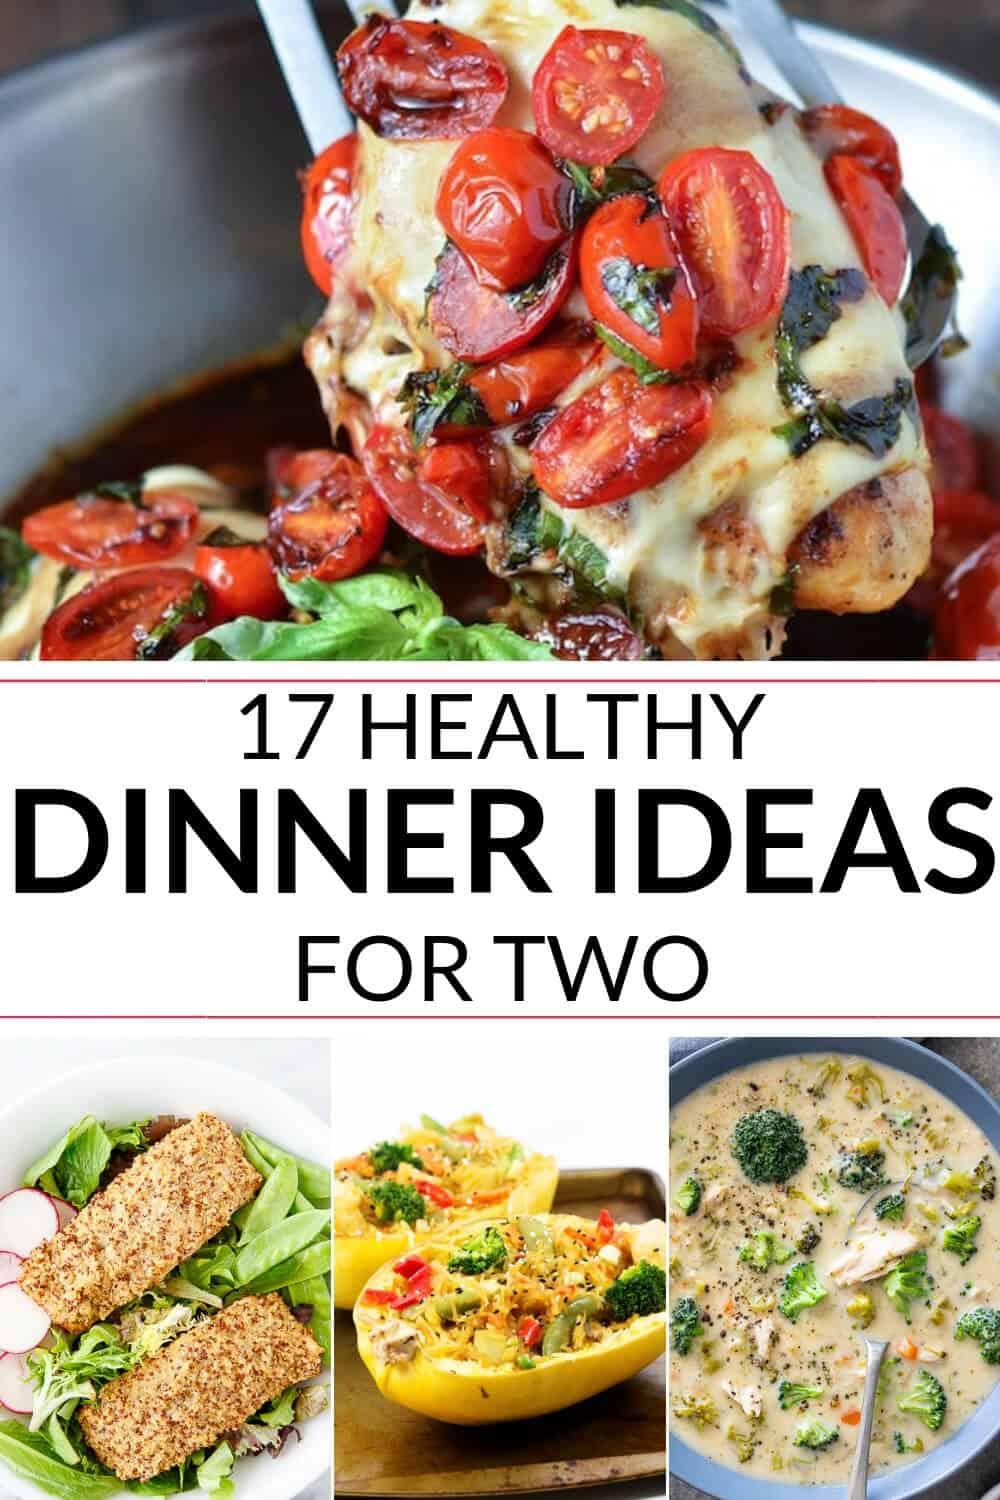 A collection of healthy dinner ideas for two including chicken, fish pasta and soups